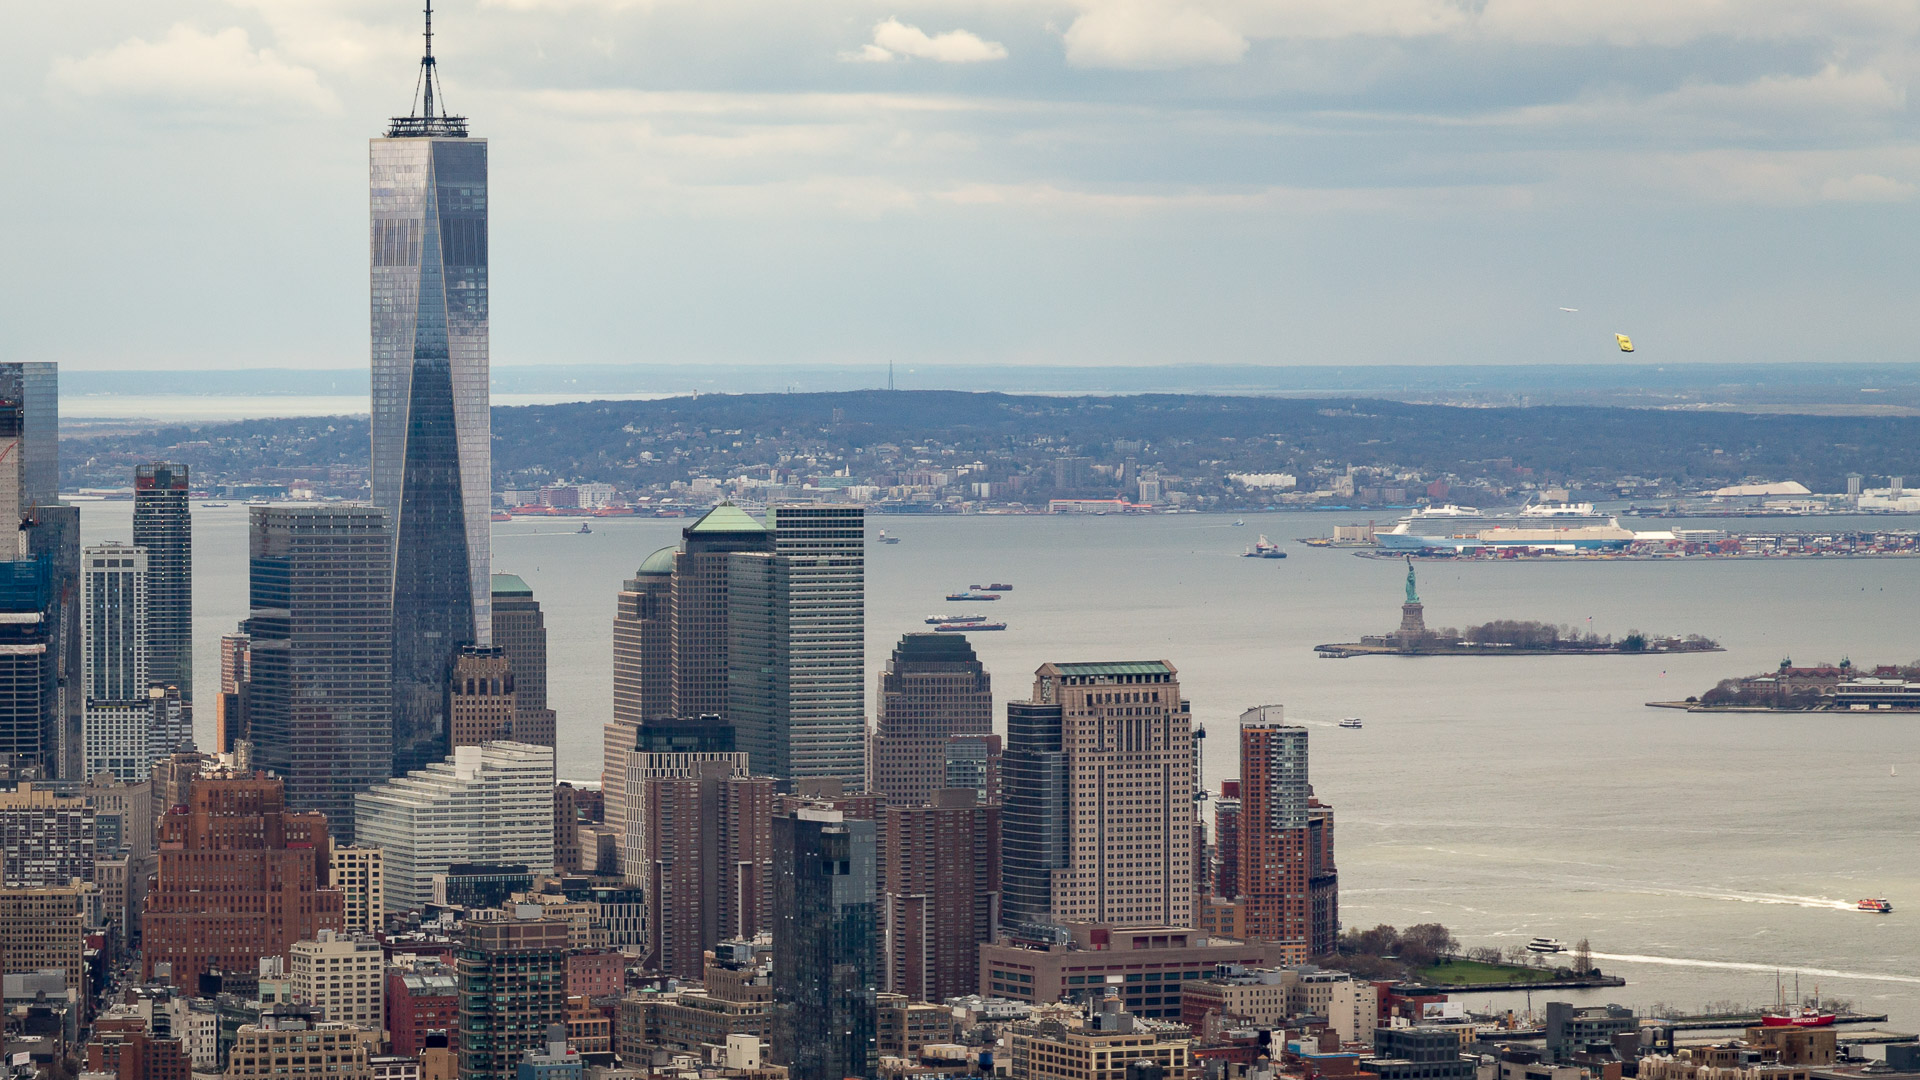 Der Süden Manhattans mit dem One World Trade Center